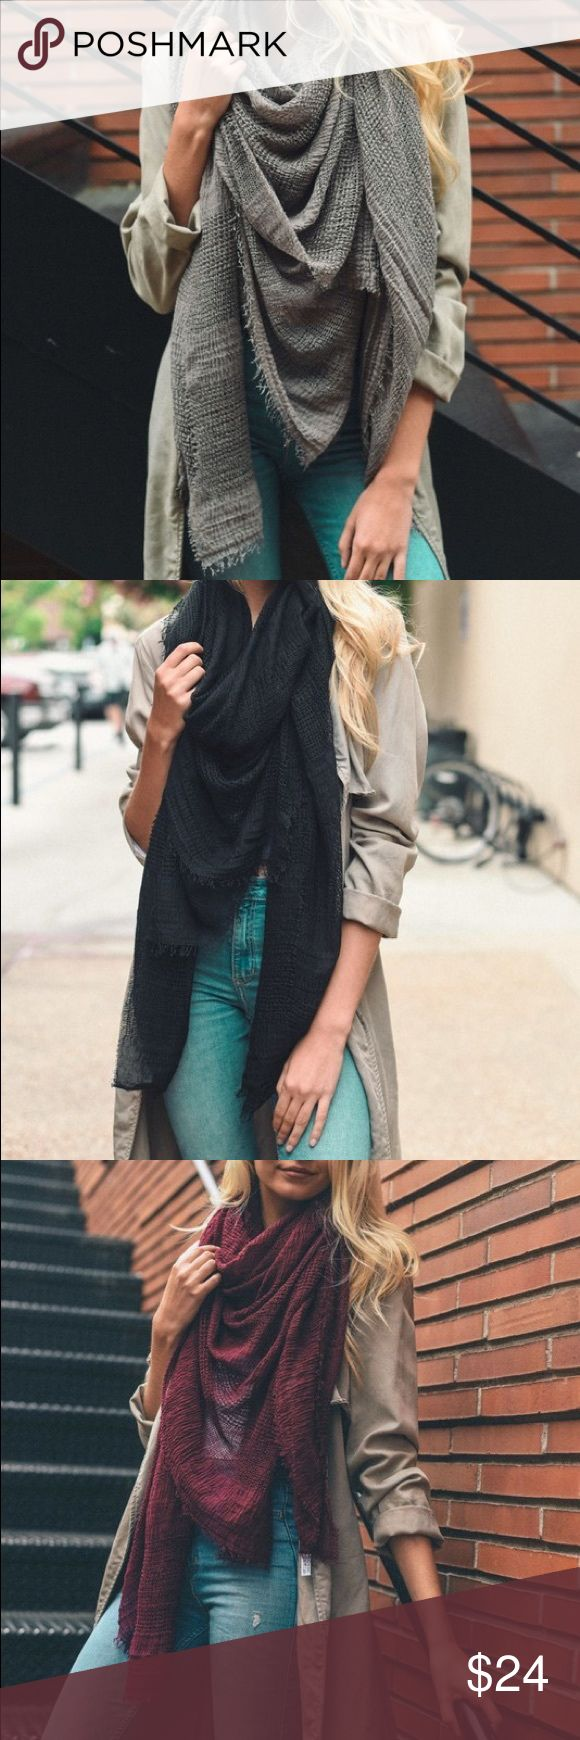 """🌼Gorgeous shredded scar . Various colors🌼 Shredded Open Weave Blanket Scarf. 80% Polyester 20% Viscose. Dimension 60""""x60"""" Accessories Scarves & Wraps"""